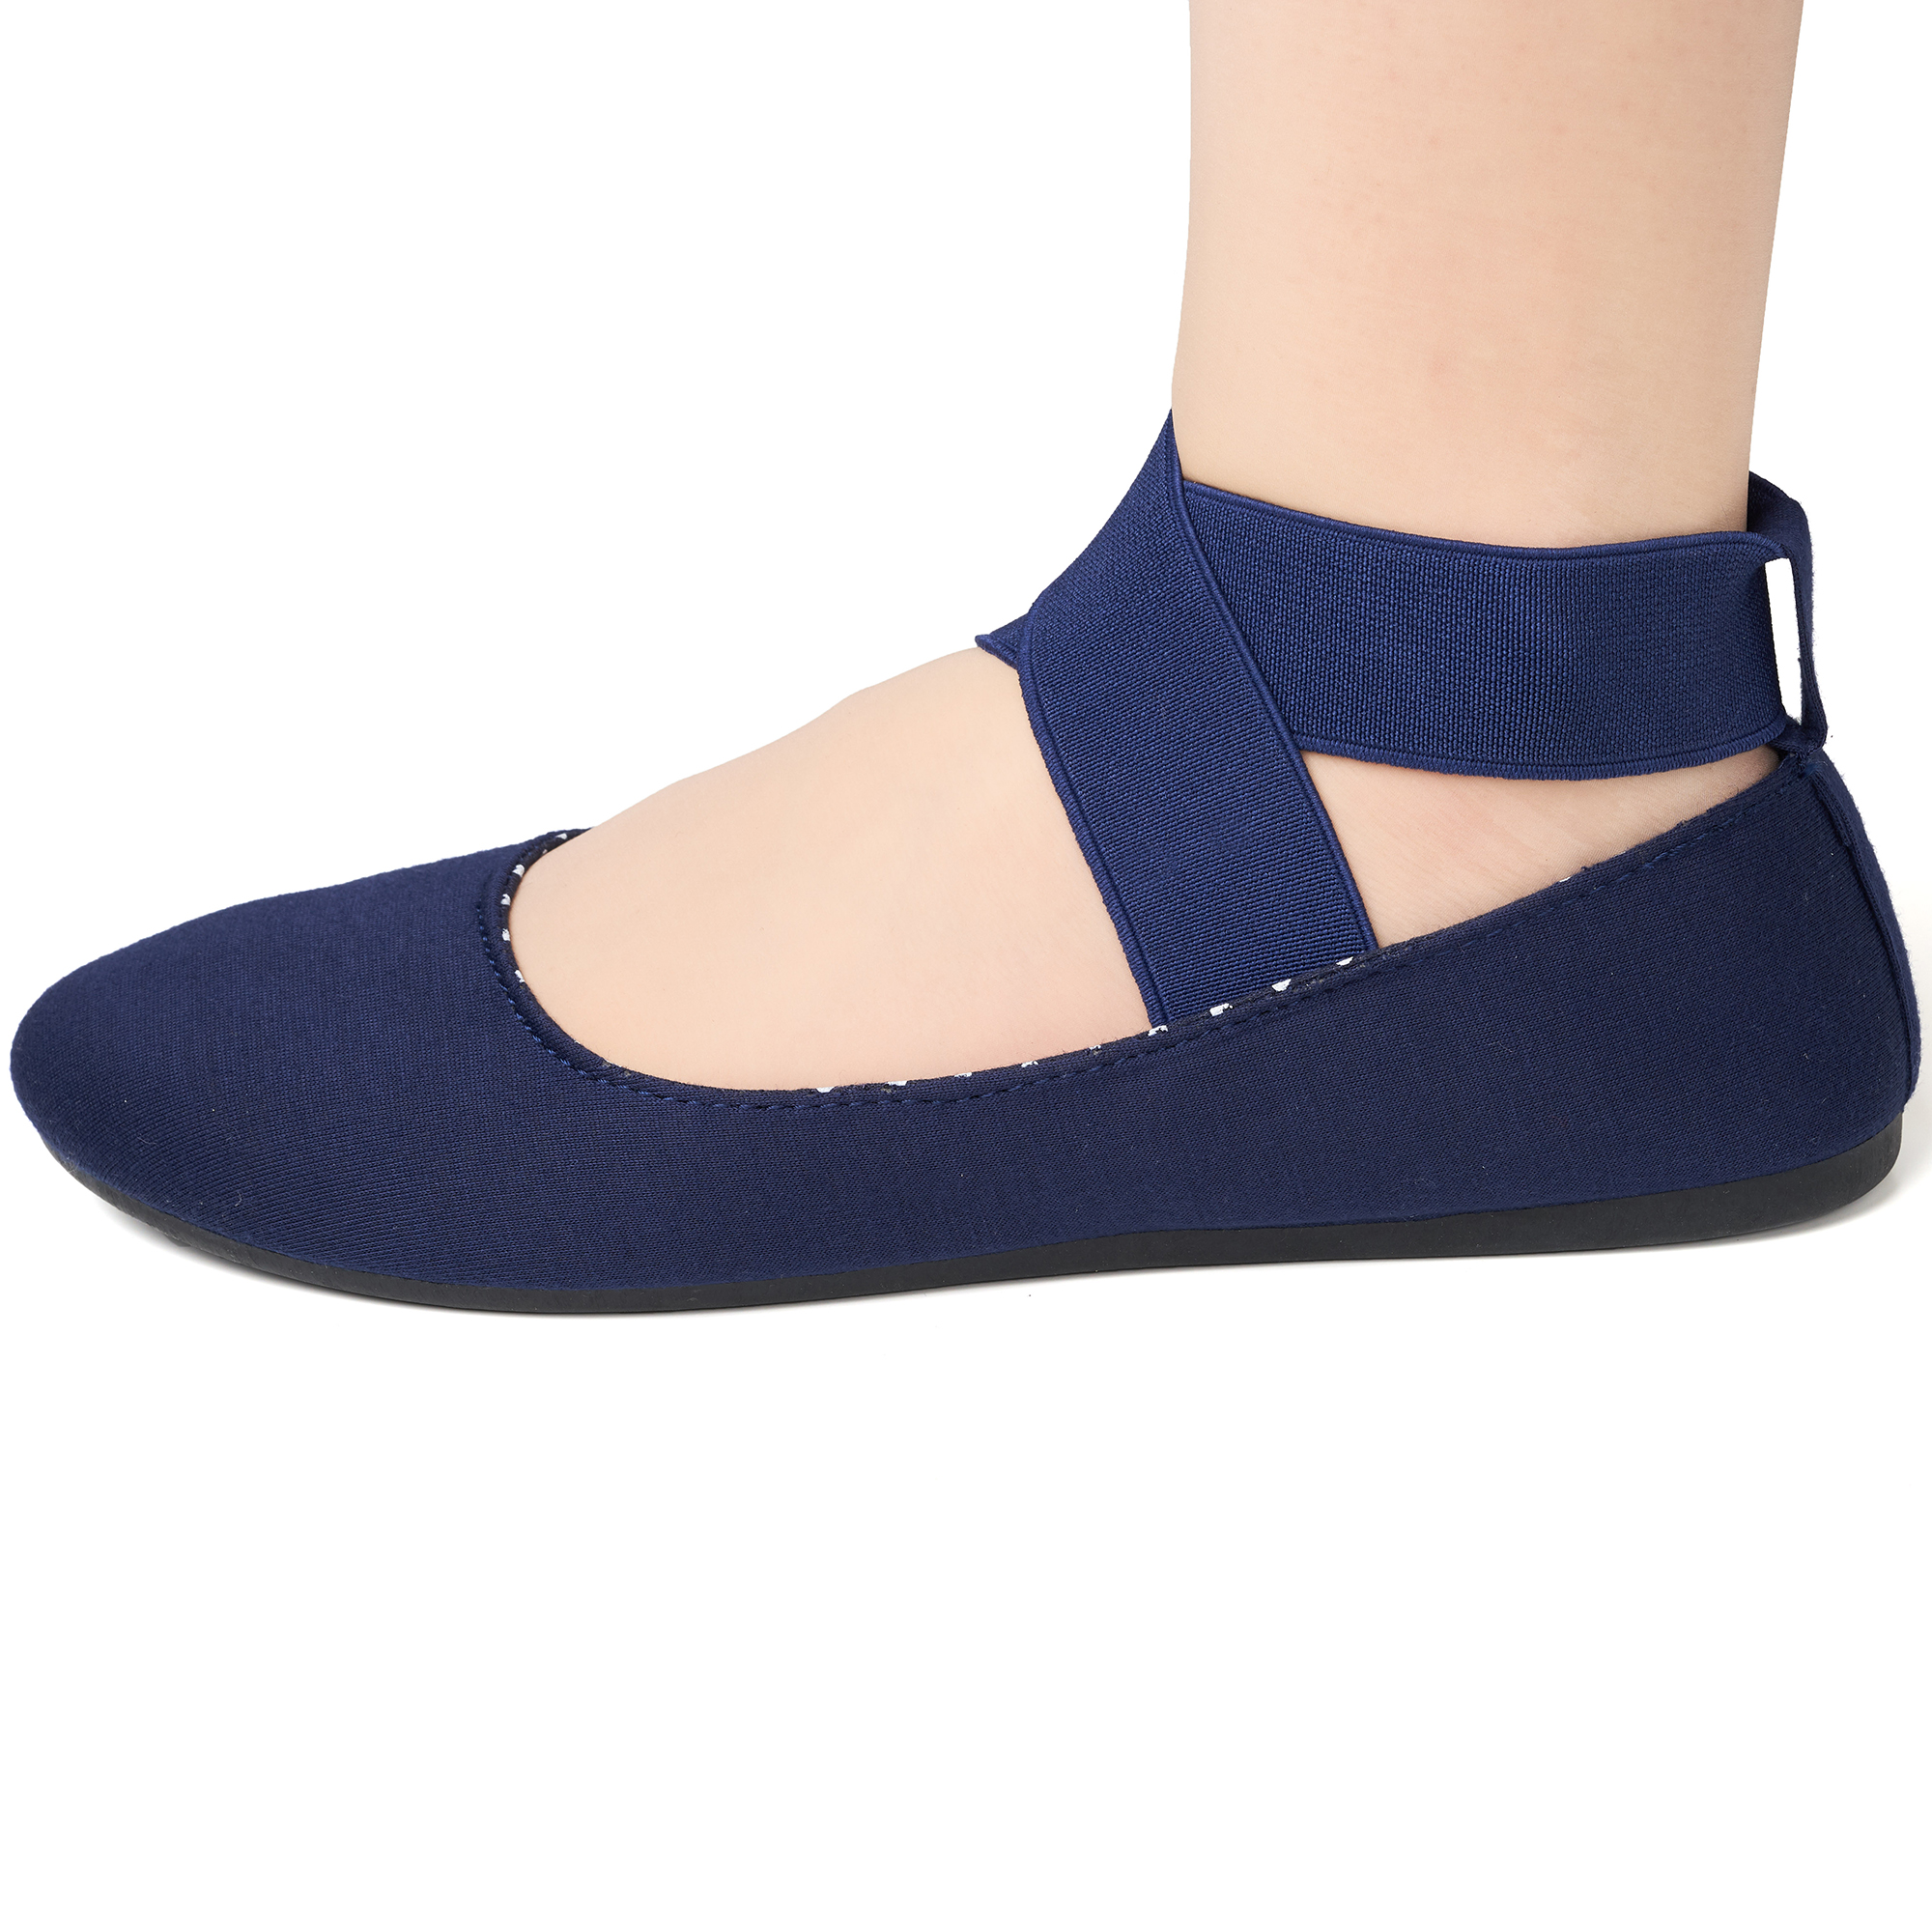 Alpine-Swiss-Peony-Womens-Ballet-Flats-Elastic-Ankle-Strap-Shoes-Slip-On-Loafers thumbnail 44